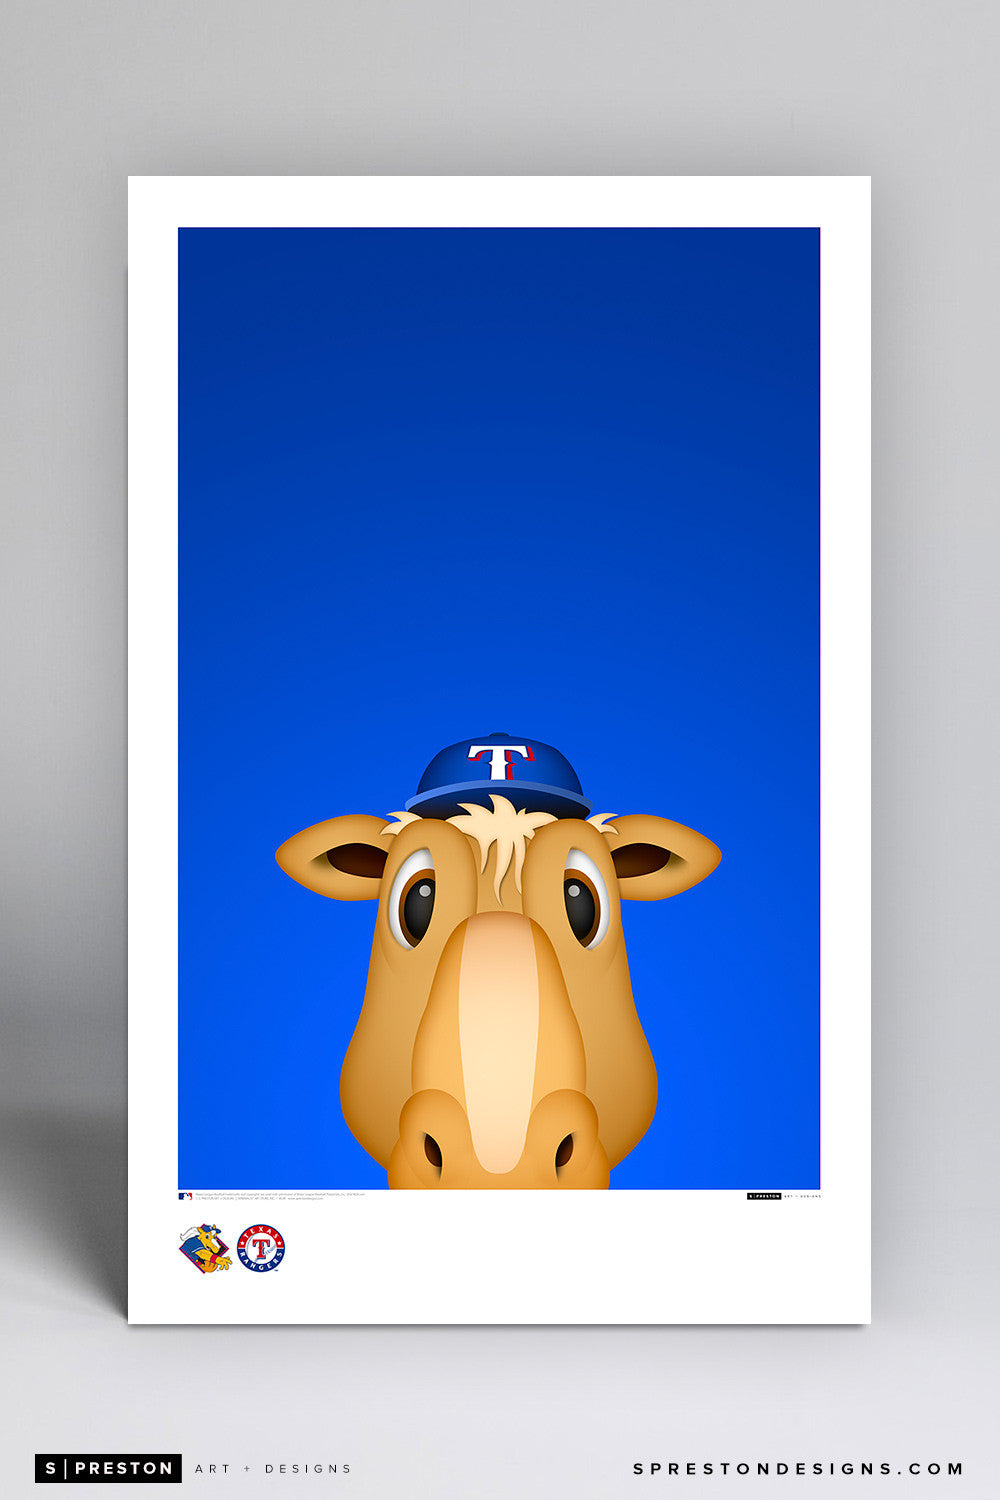 Minimalist Ranger Captain Art Poster Art Poster - Texas Rangers - S. Preston Art + Designs